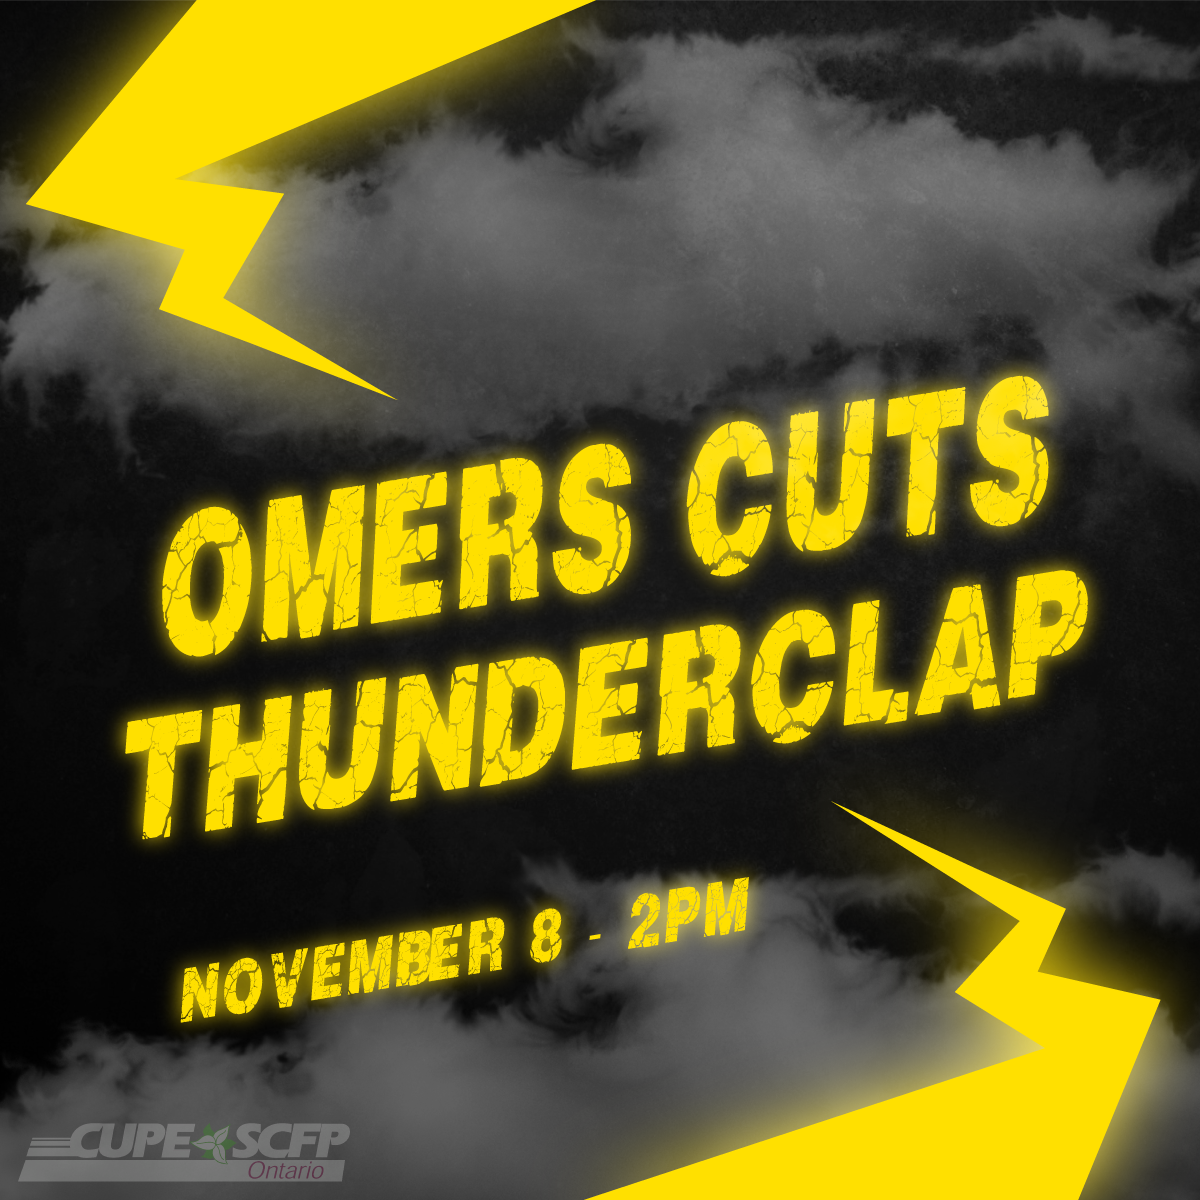 OMERS CUTS THUNDERCLAP November 8 - 2PM